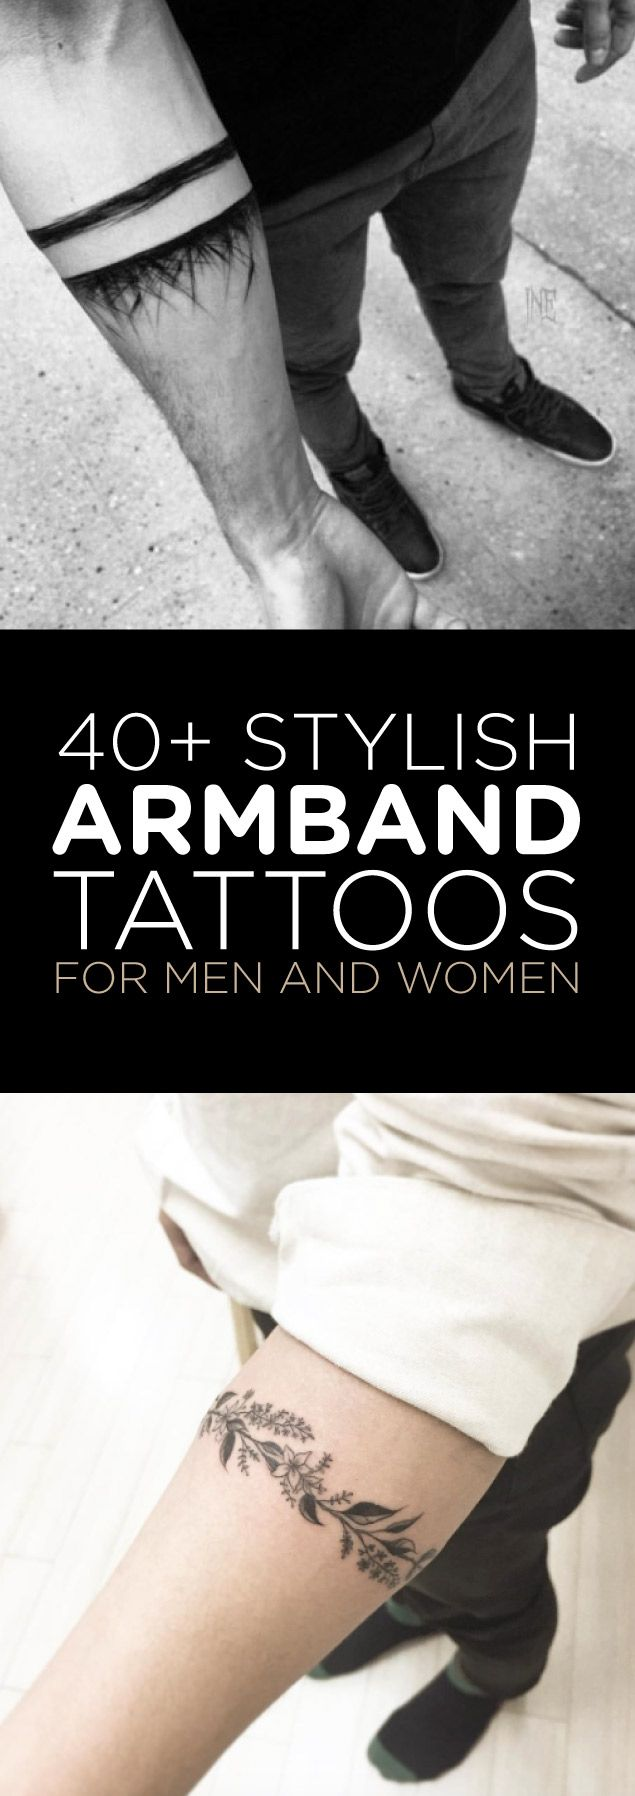 The perfect armband tattoo is a rare thing. You could